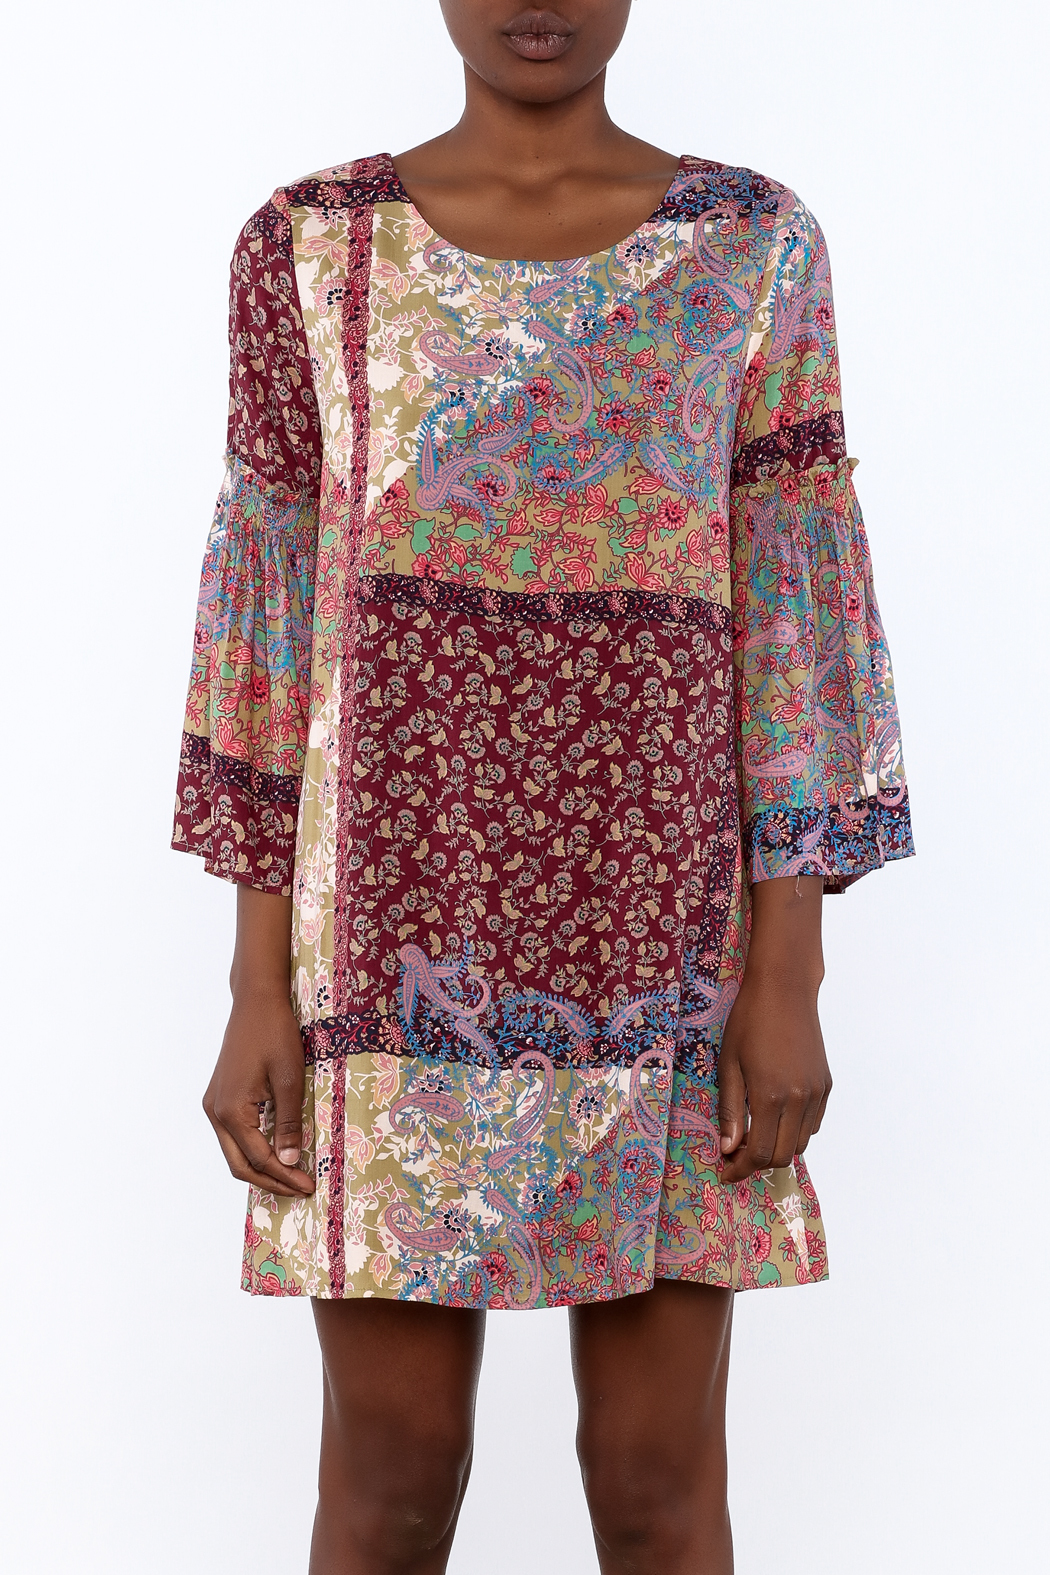 Gina Louise Bohemian Patchwork Dress - Side Cropped Image